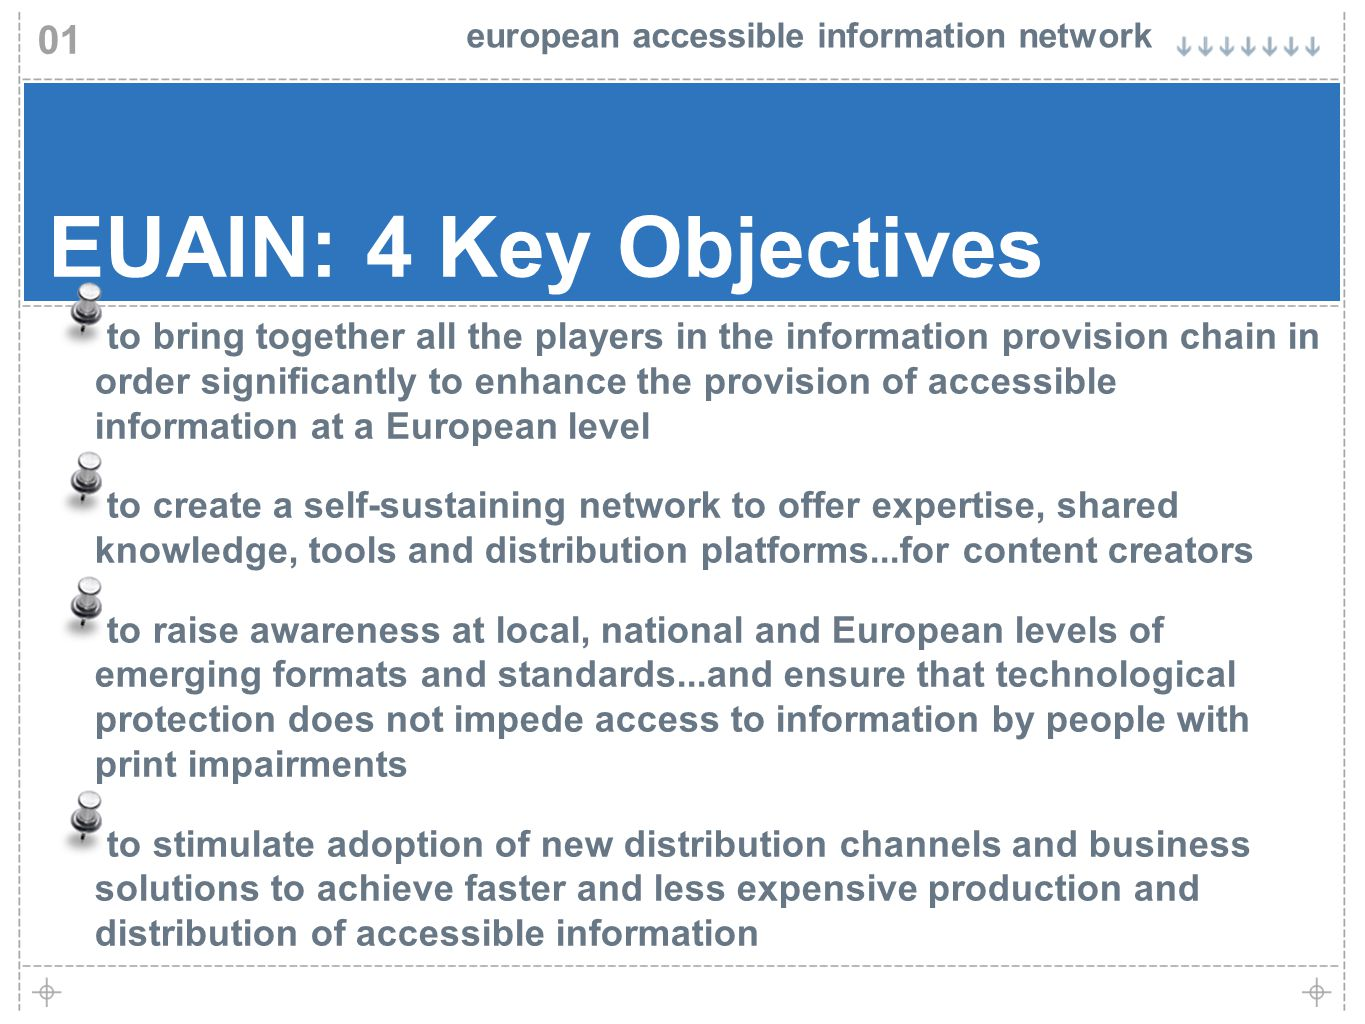 european accessible information network 01 EUAIN: 4 Key Objectives to bring together all the players in the information provision chain in order significantly to enhance the provision of accessible information at a European level to create a self-sustaining network to offer expertise, shared knowledge, tools and distribution platforms...for content creators to raise awareness at local, national and European levels of emerging formats and standards...and ensure that technological protection does not impede access to information by people with print impairments to stimulate adoption of new distribution channels and business solutions to achieve faster and less expensive production and distribution of accessible information